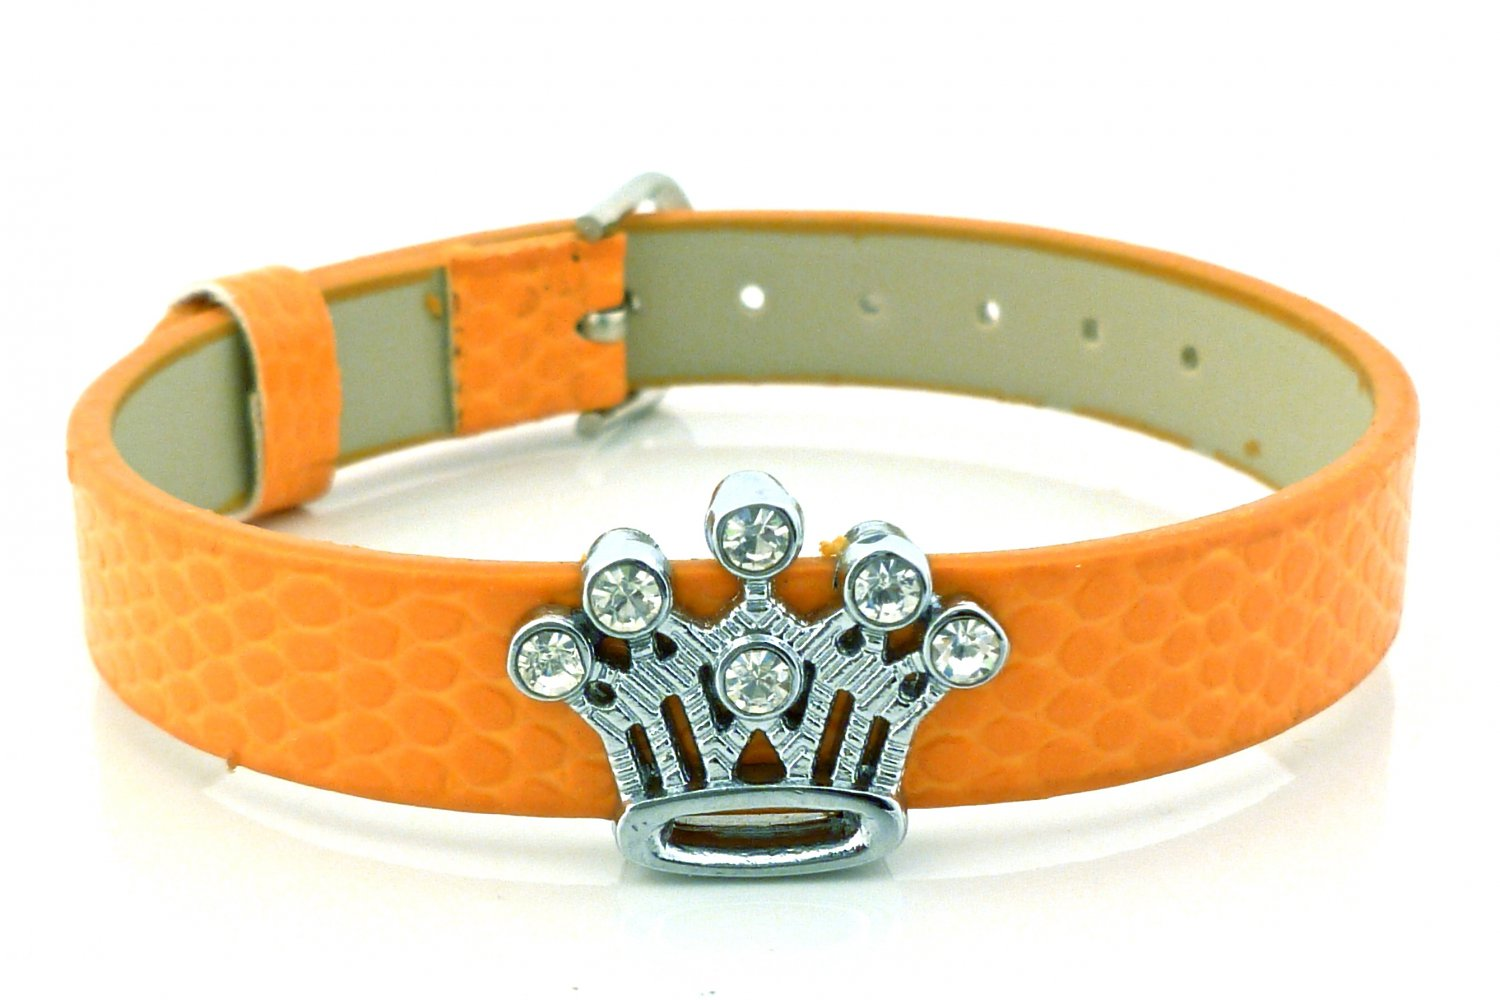 Crown Rhinestone Slide Charm Pumpkin Orange Belt Buckle Style Bracelet